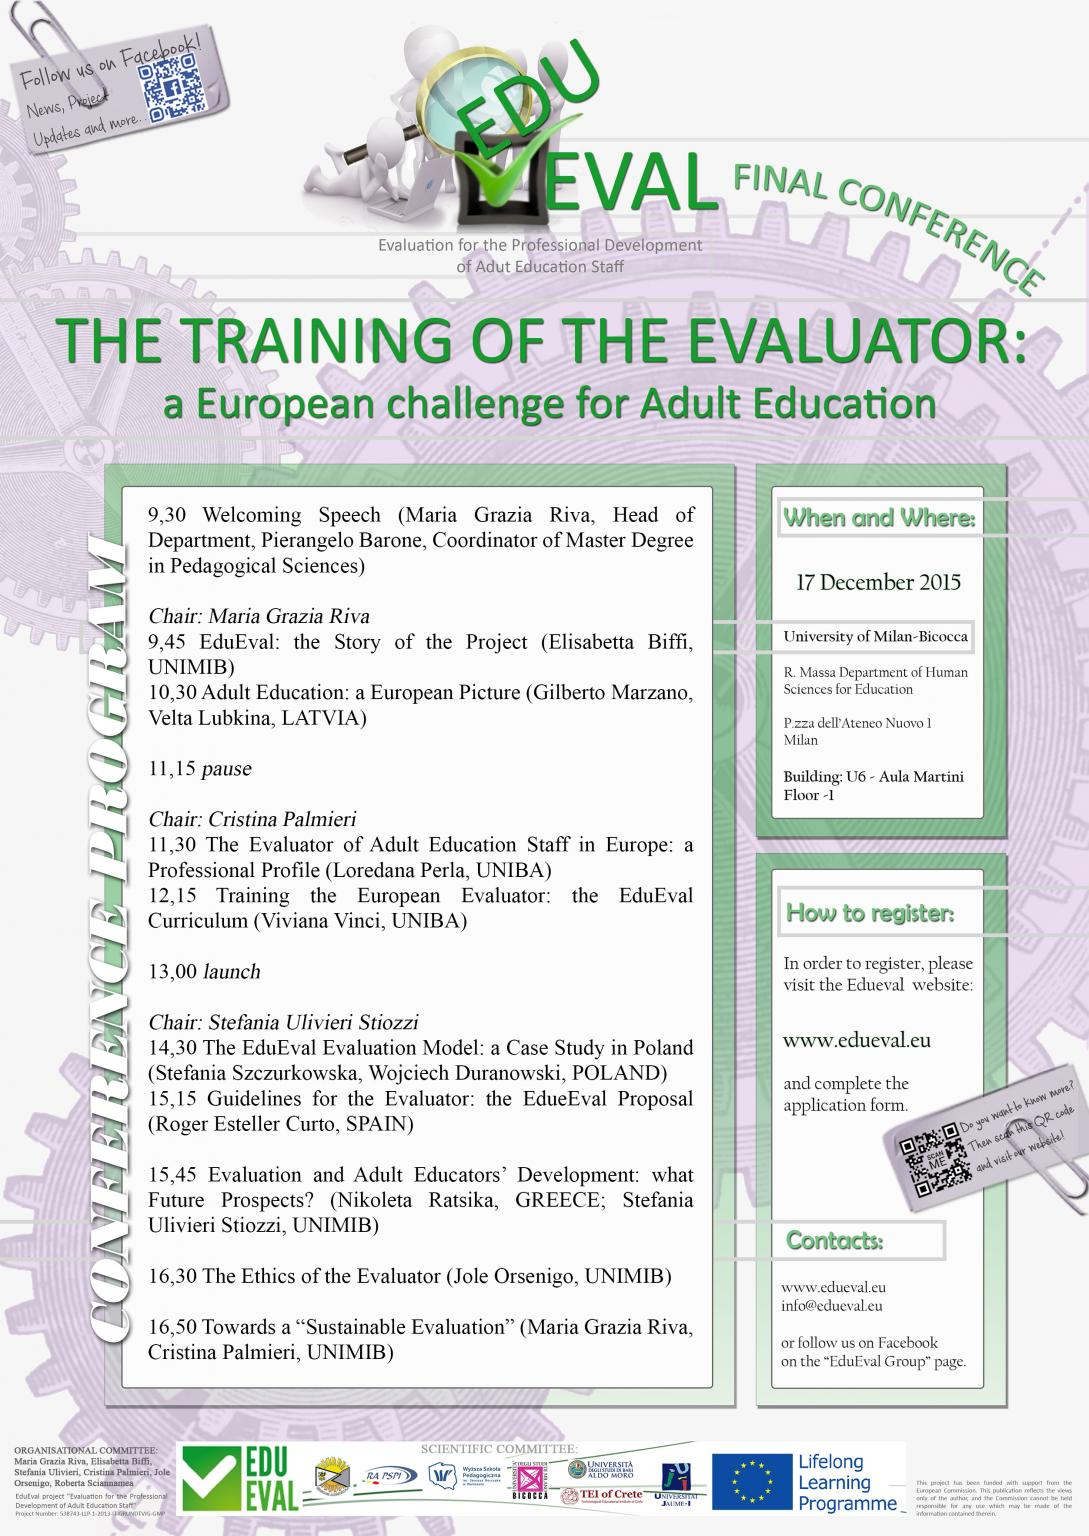 EDUEVAL HANDBOOK RELEASED!!!